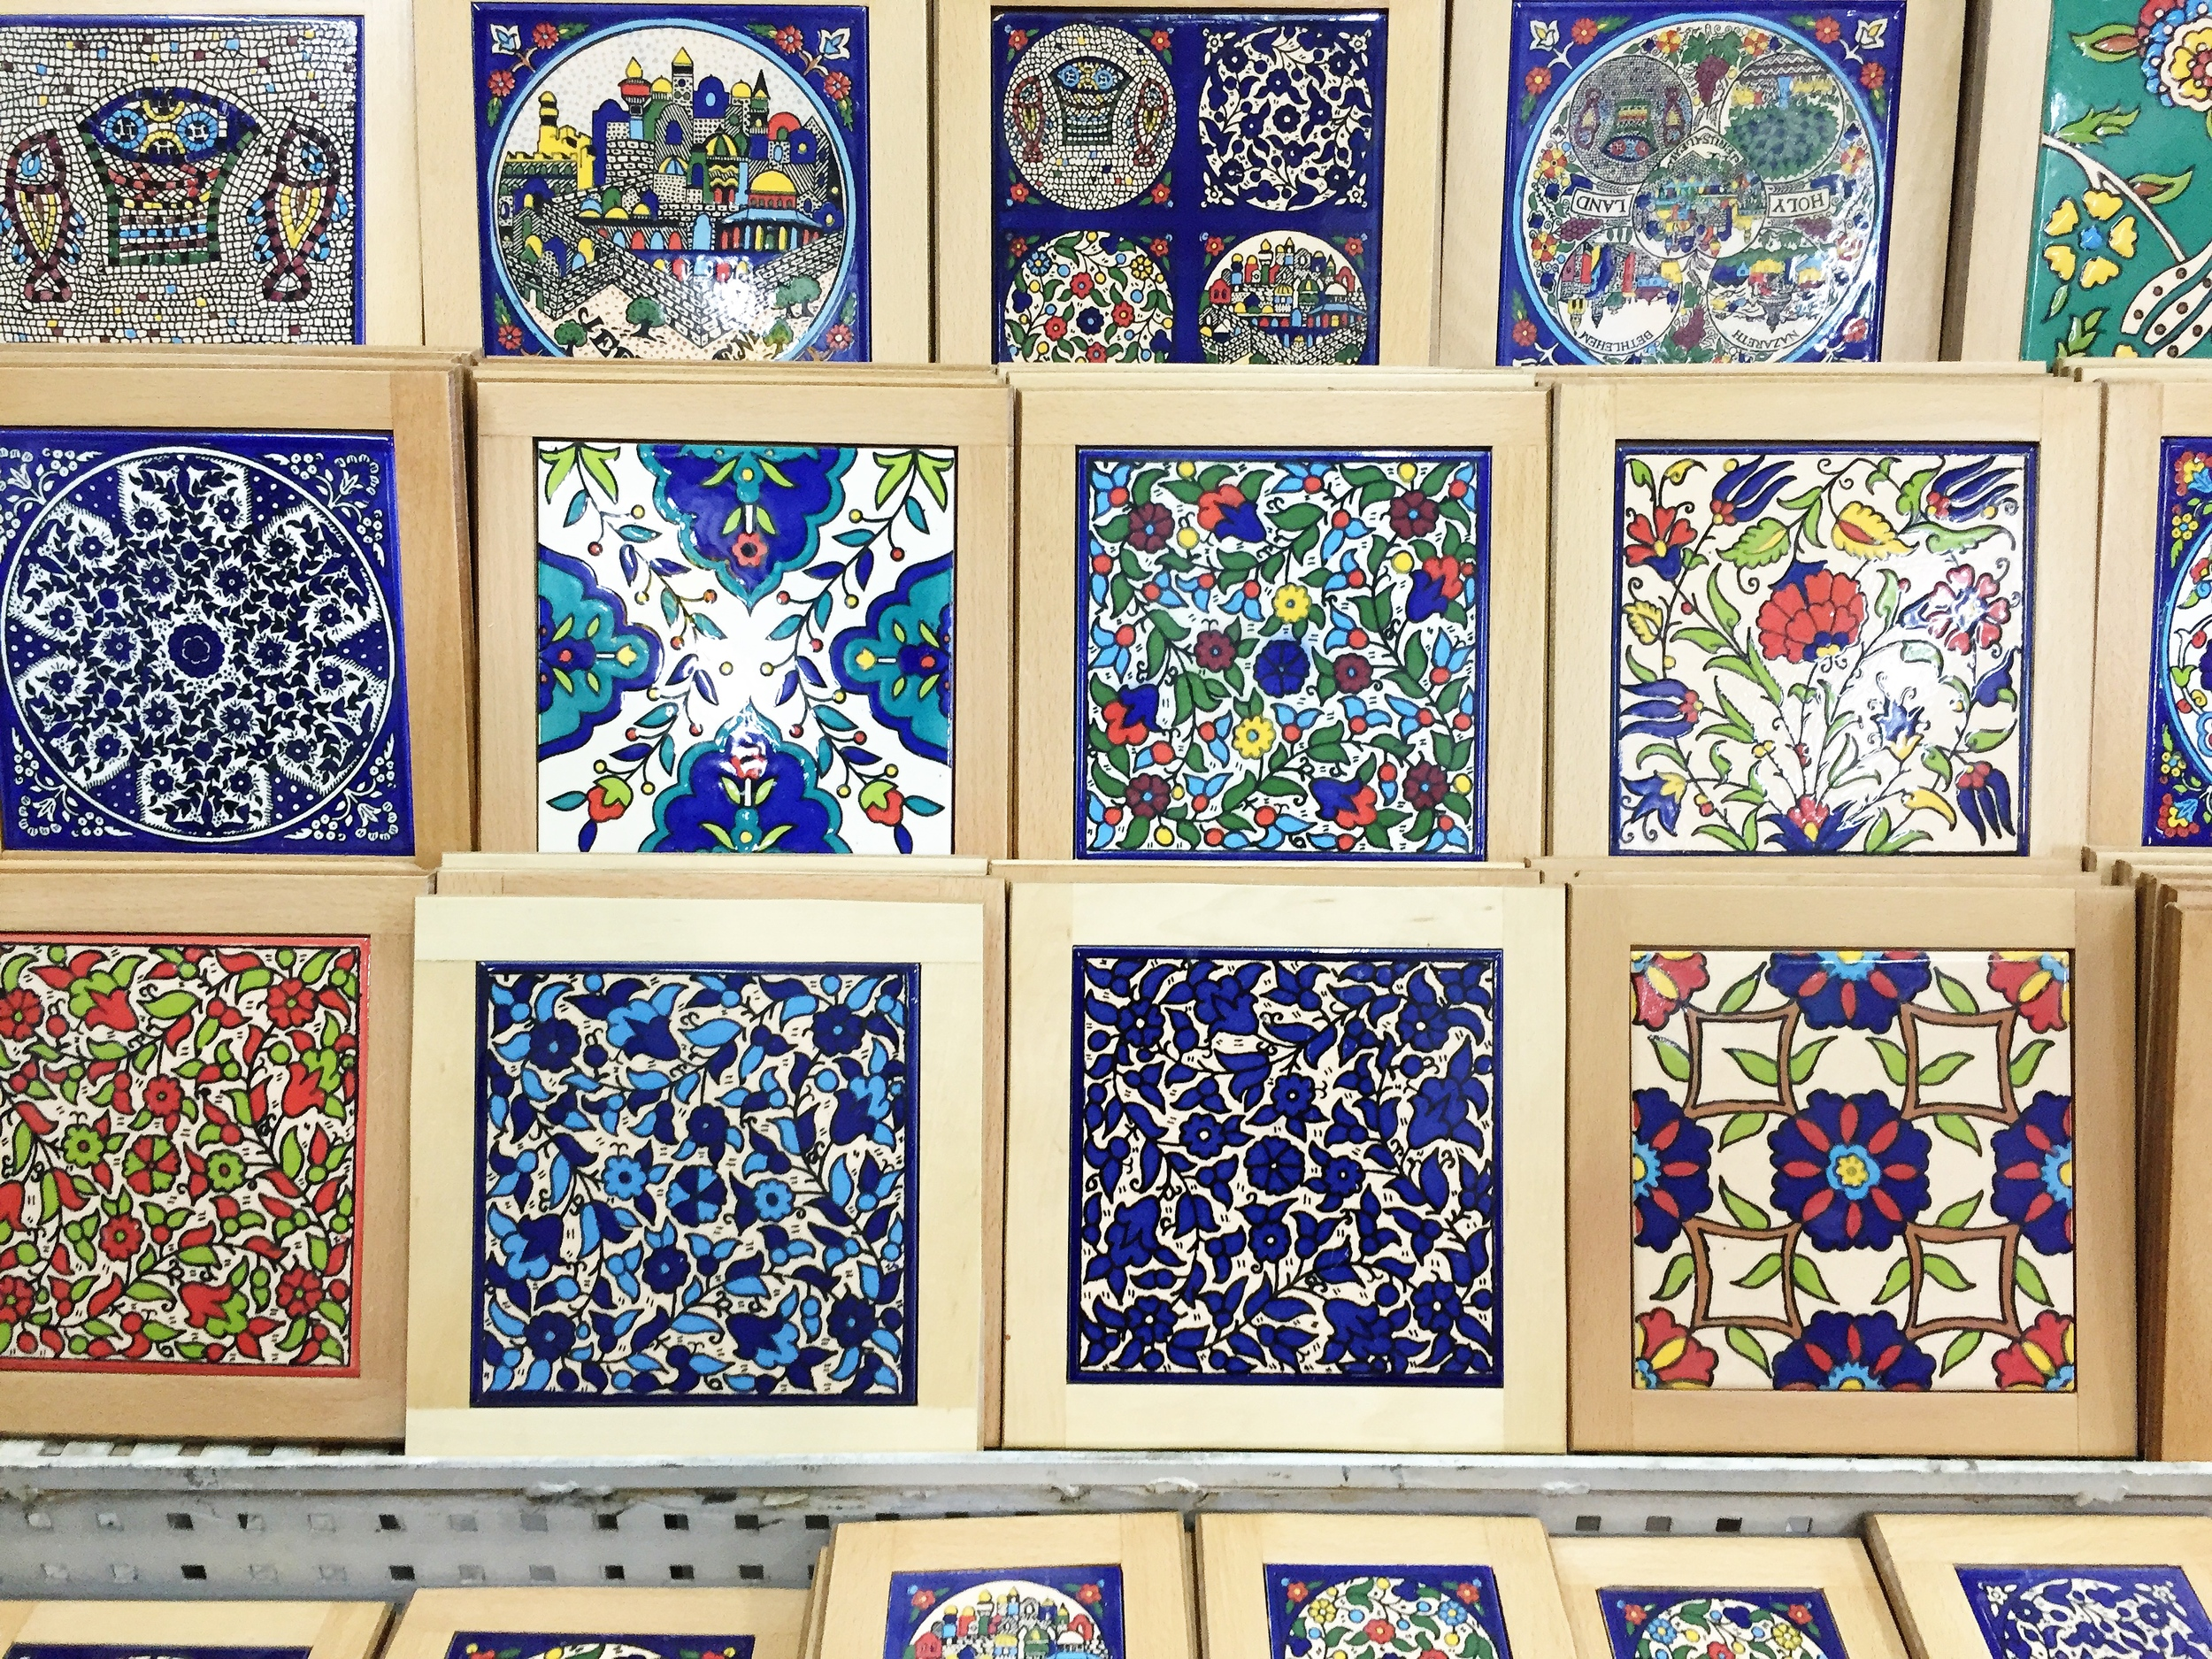 Hand painted tiles | We got to witness these and other pottery items being made and painted in person! So lucky that we got to bring some home as a small reminder of the trip.